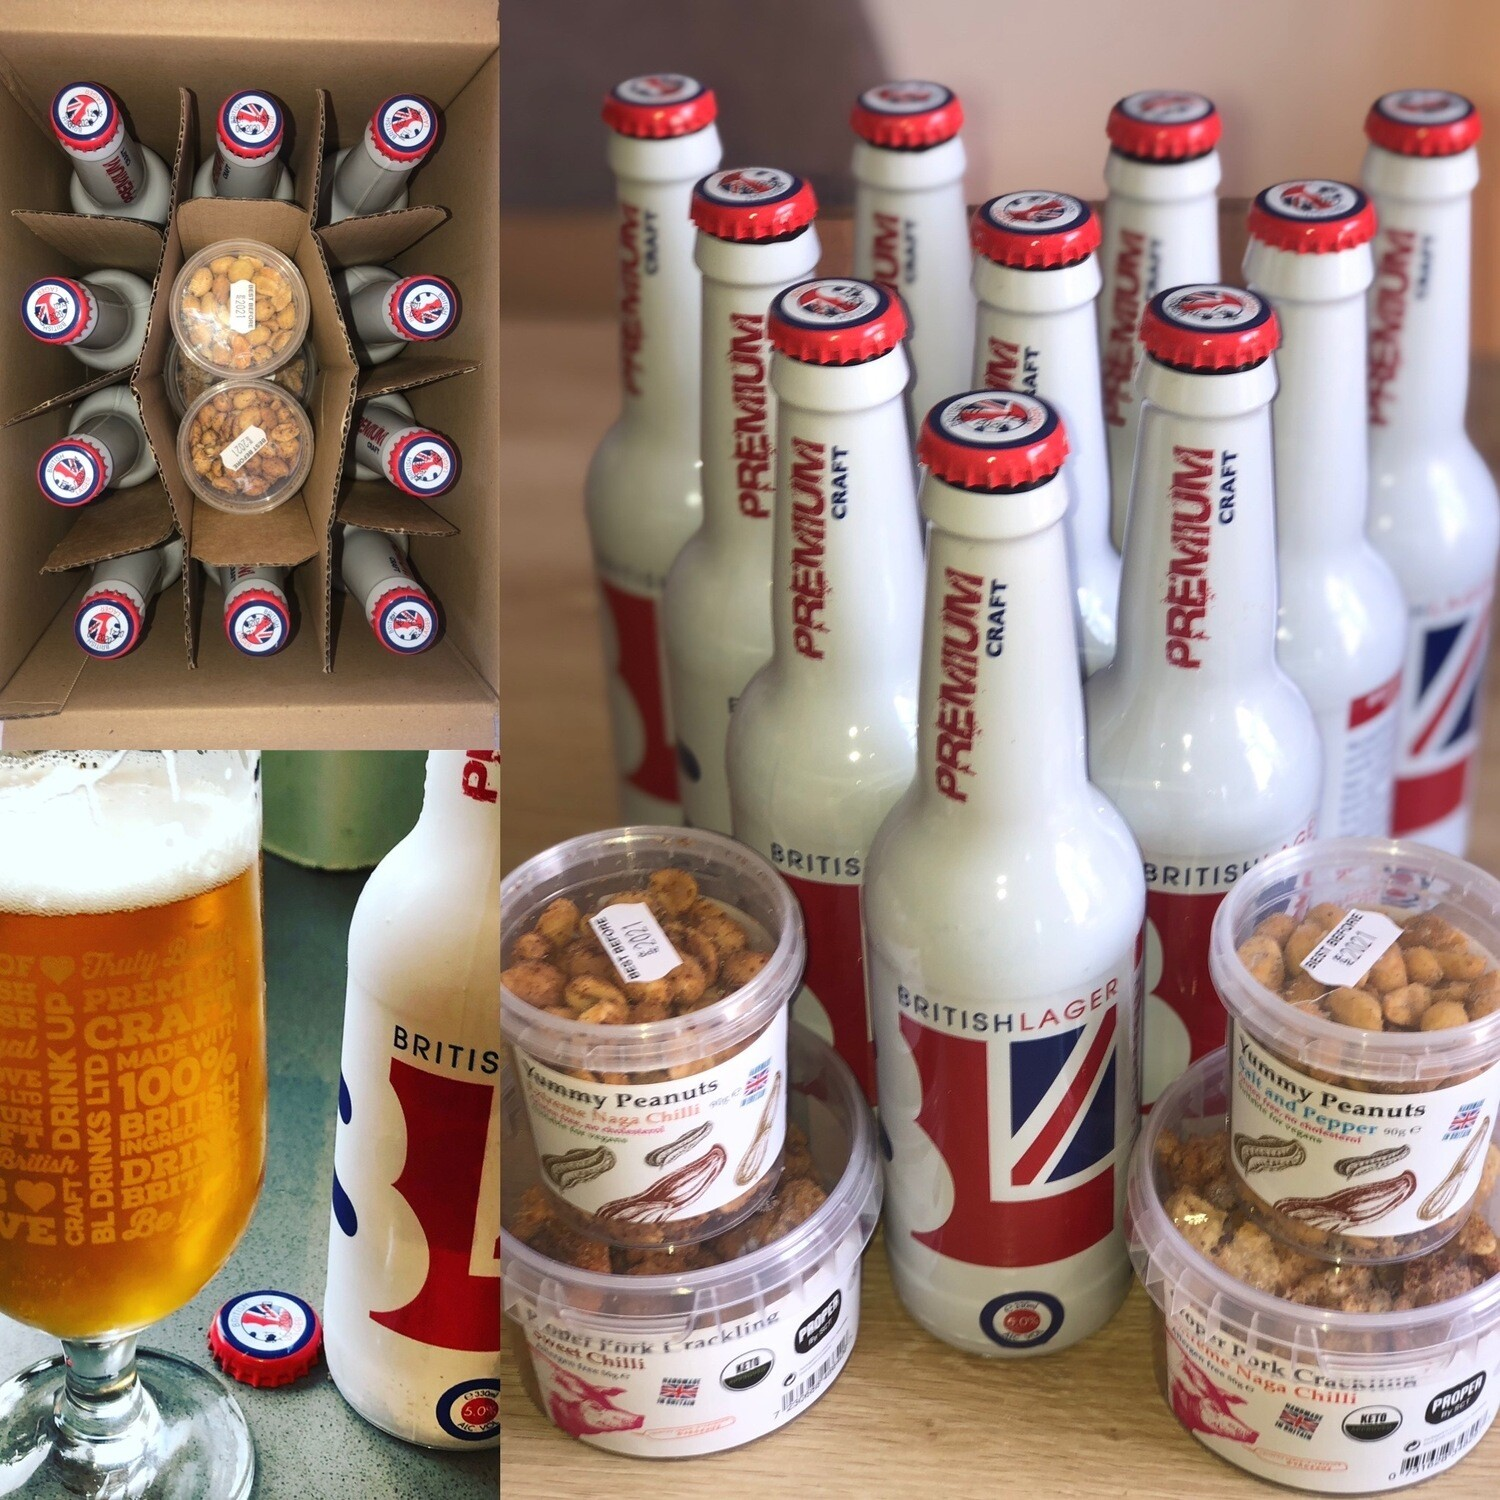 British Lager & Proper by SCT special (Winchester, Ascot and surrounding areas only) 10 x British Lager, PLUS 2 x tubs of Pork Scratchings and 2 x tubs Yummy peanuts. Includes FREE DELIVERY.